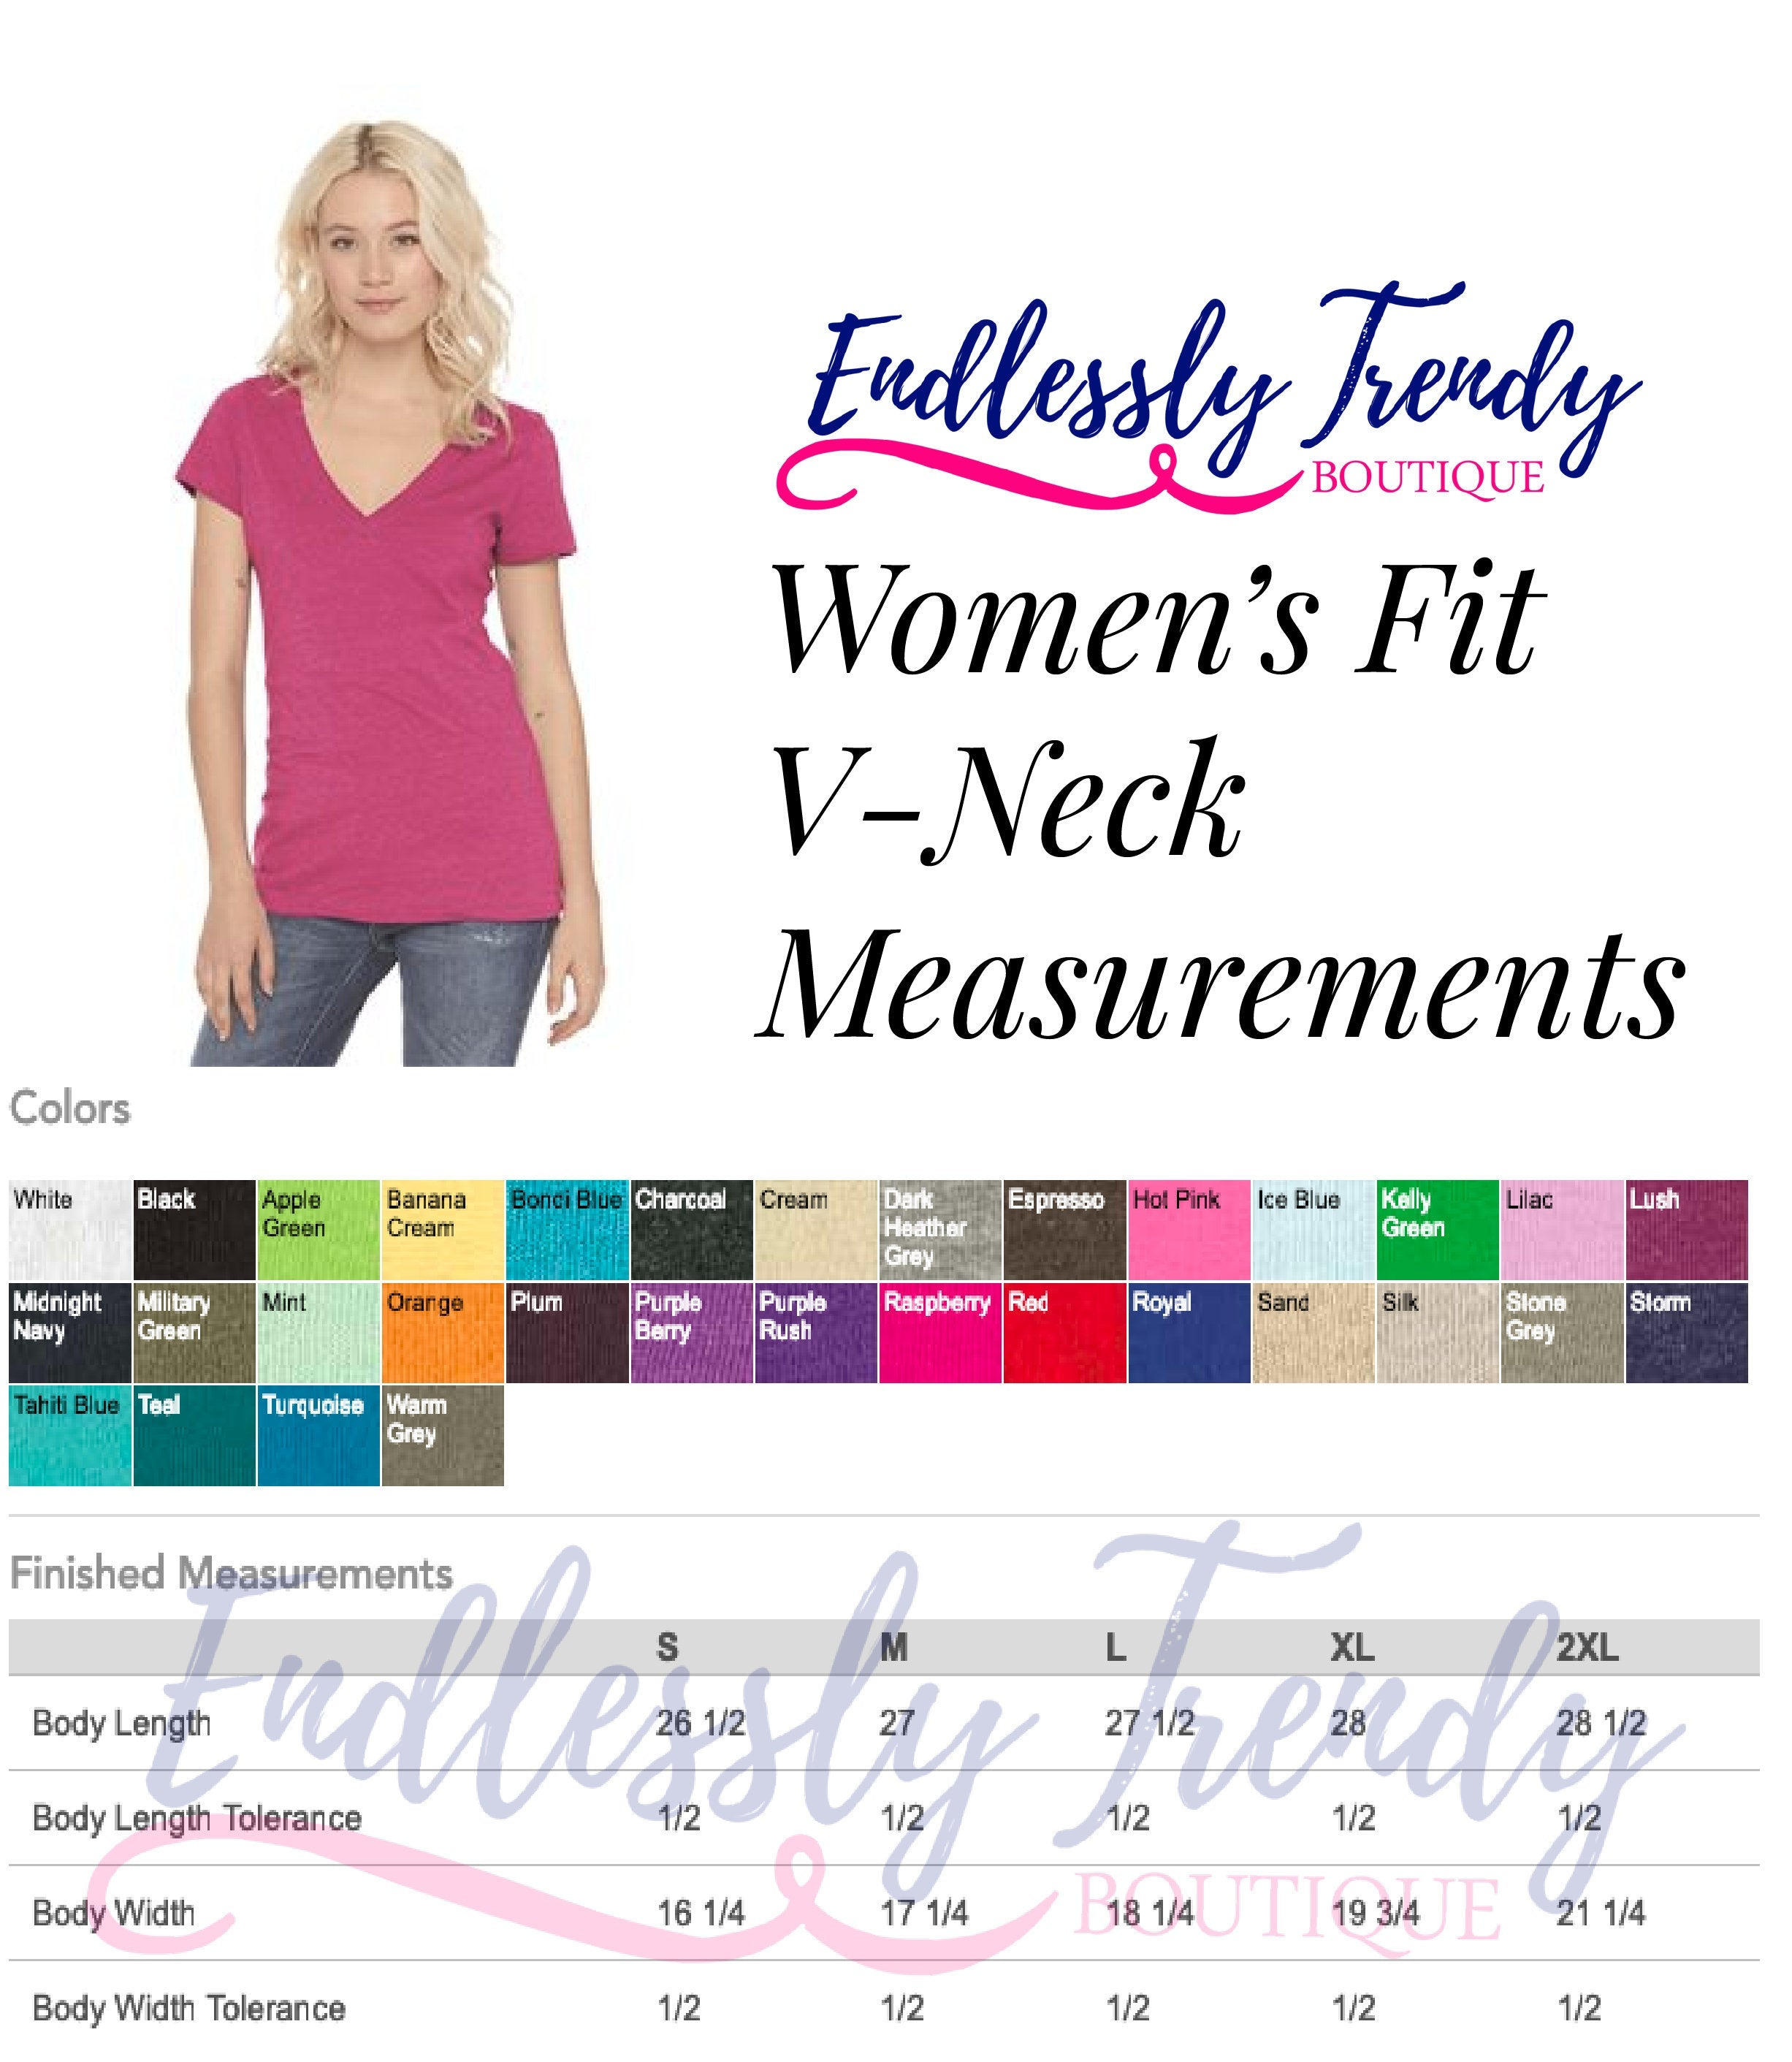 Feel. Step. Walk. Christian T-Shirt* - Endlessly Trendy Boutique